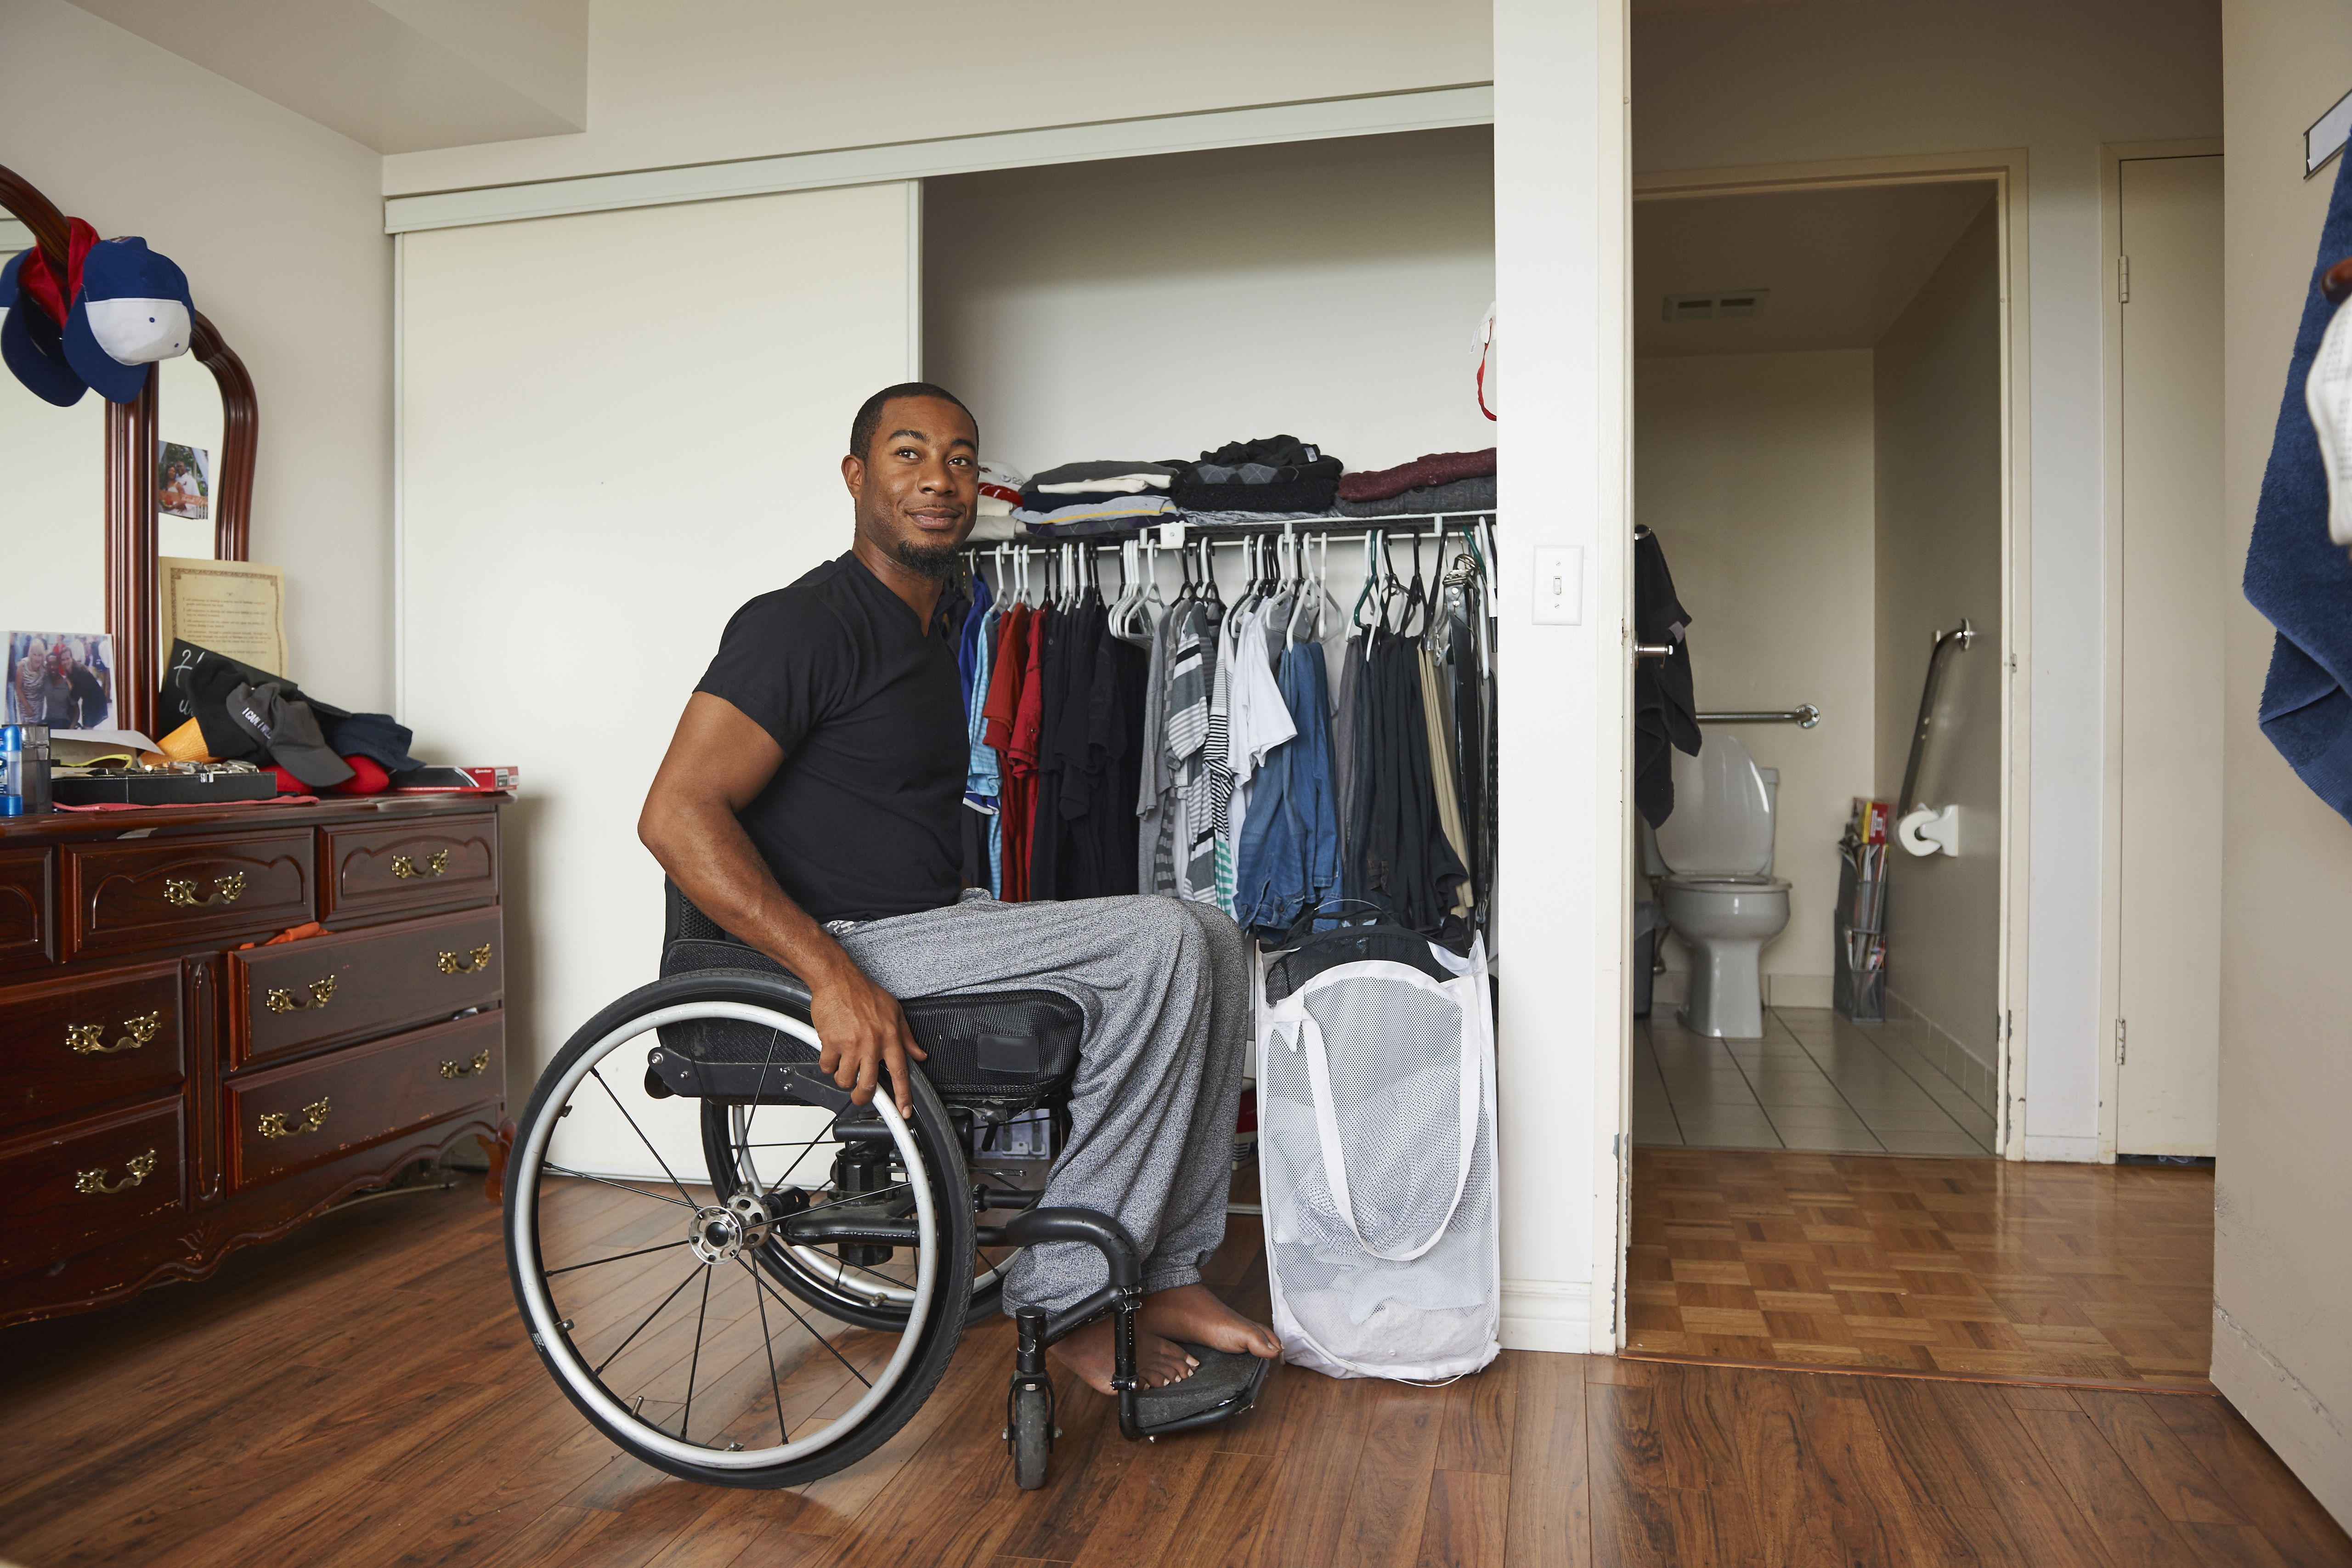 Fashionable and Functional Adaptive Clothing for Wheelchair Users